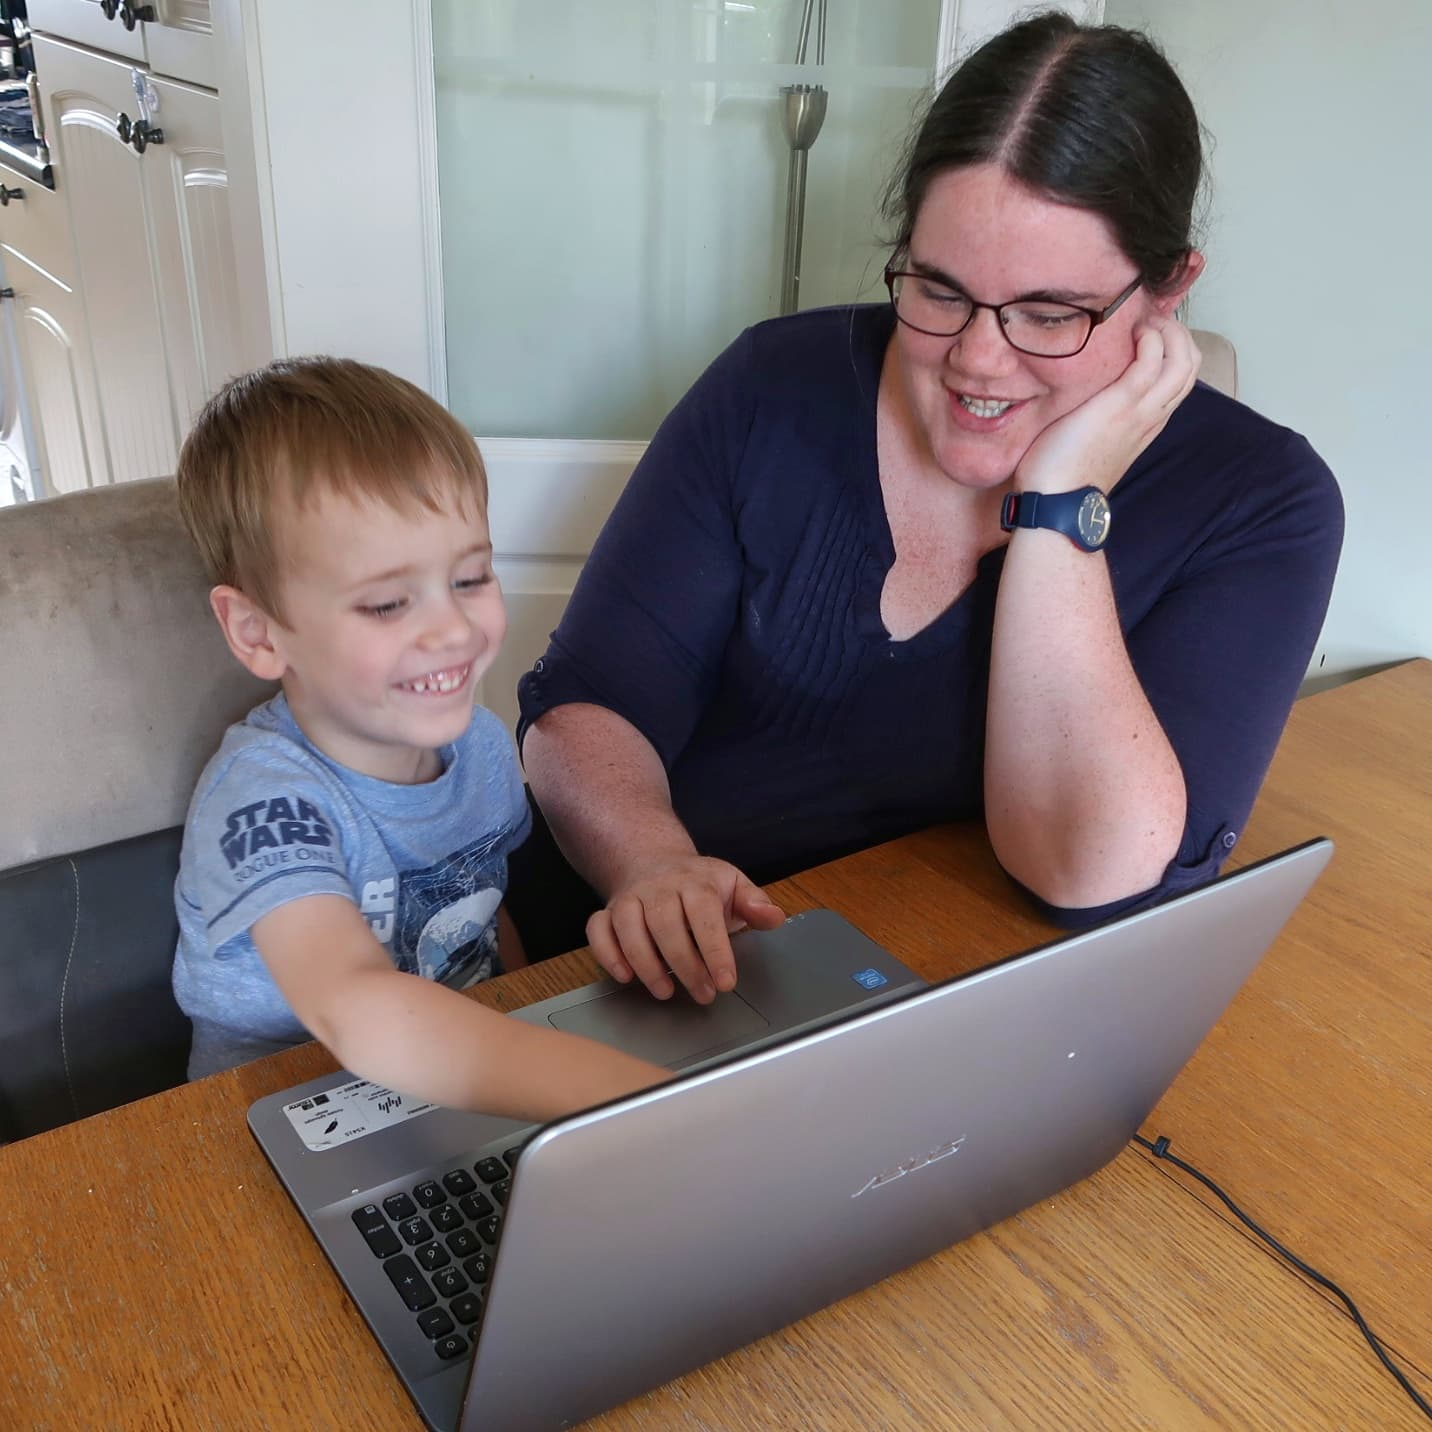 A boy and his mother at a laptop. Both are smiling and the boy is pointing. -Learning to read with Reading Eggs